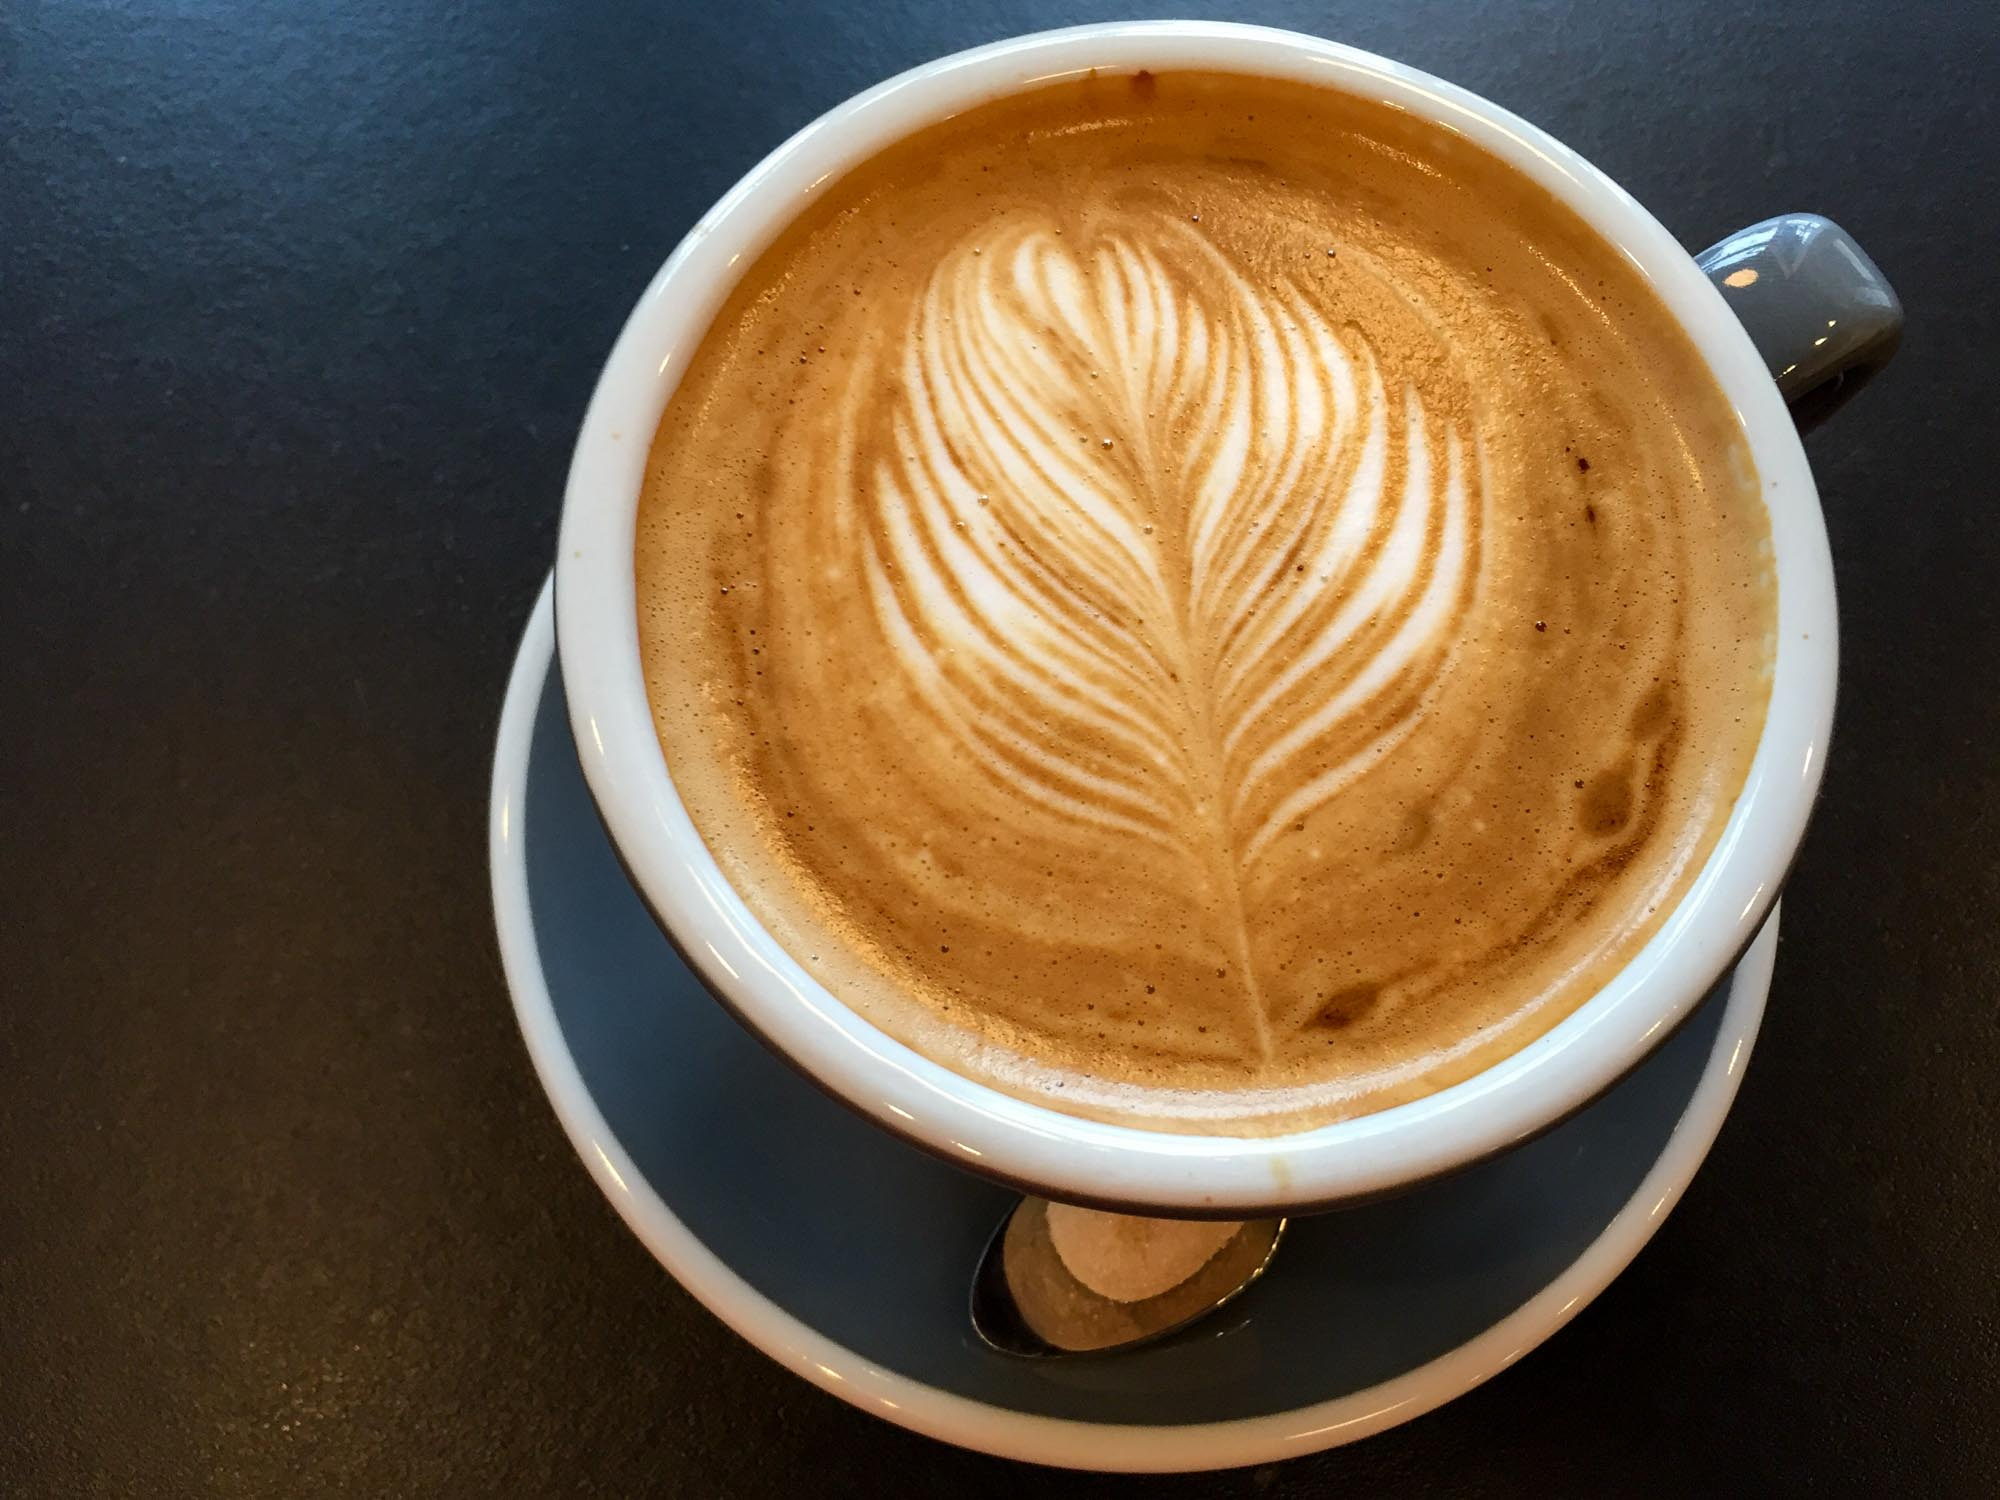 Get Your Caffeine Fix at 15 of the Best Coffee Shops in Cleveland